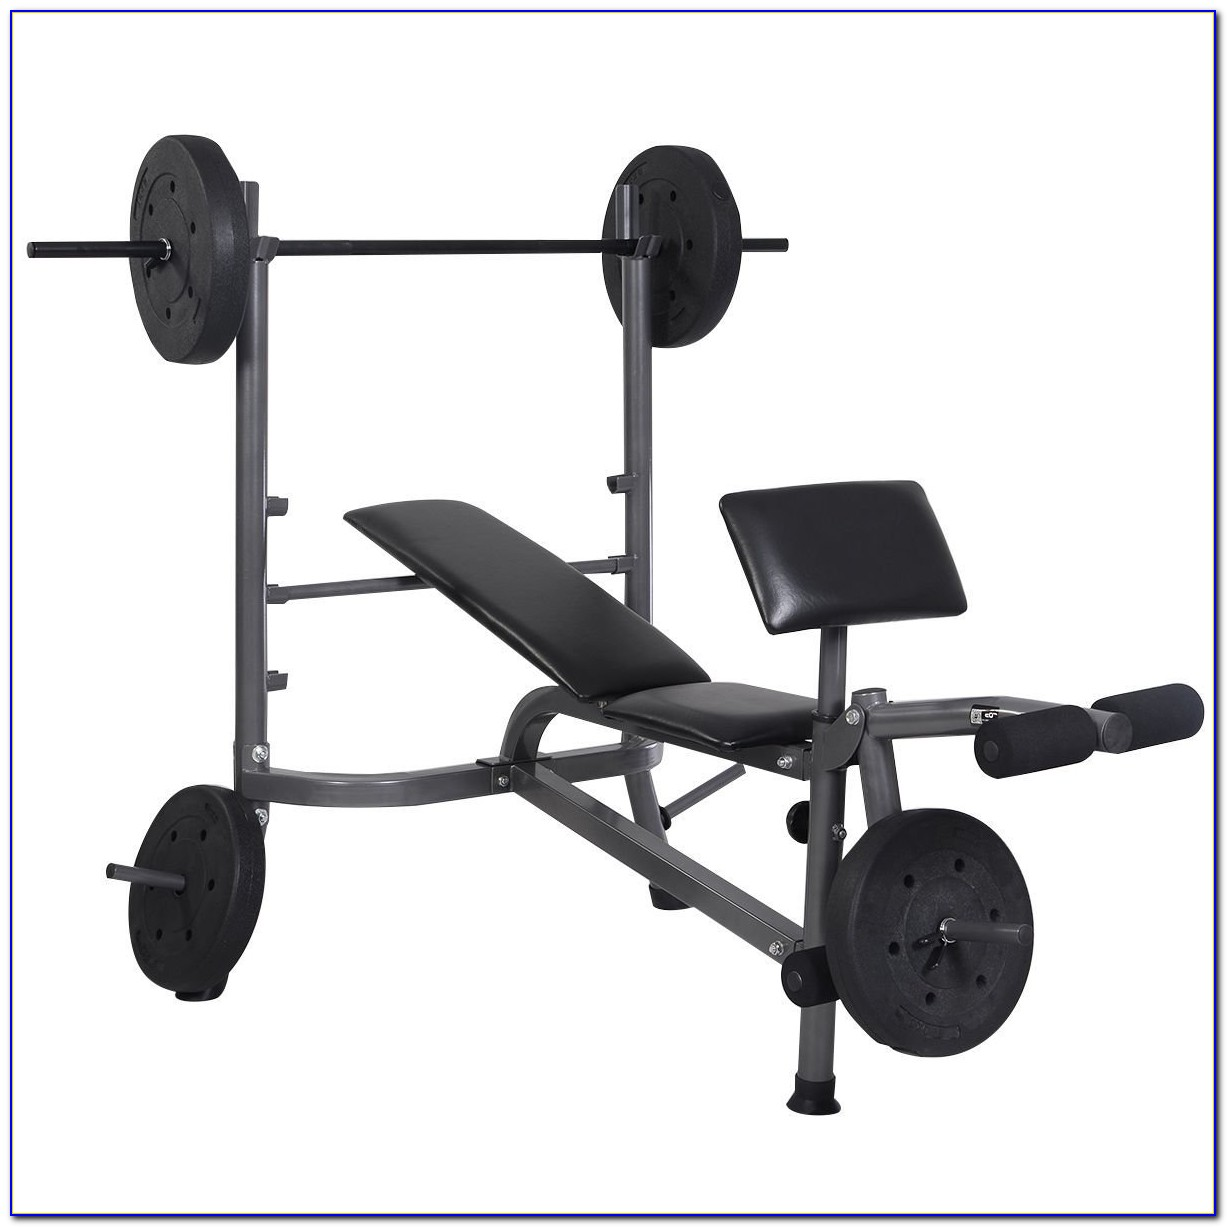 Best Weight Bench For Home Gym